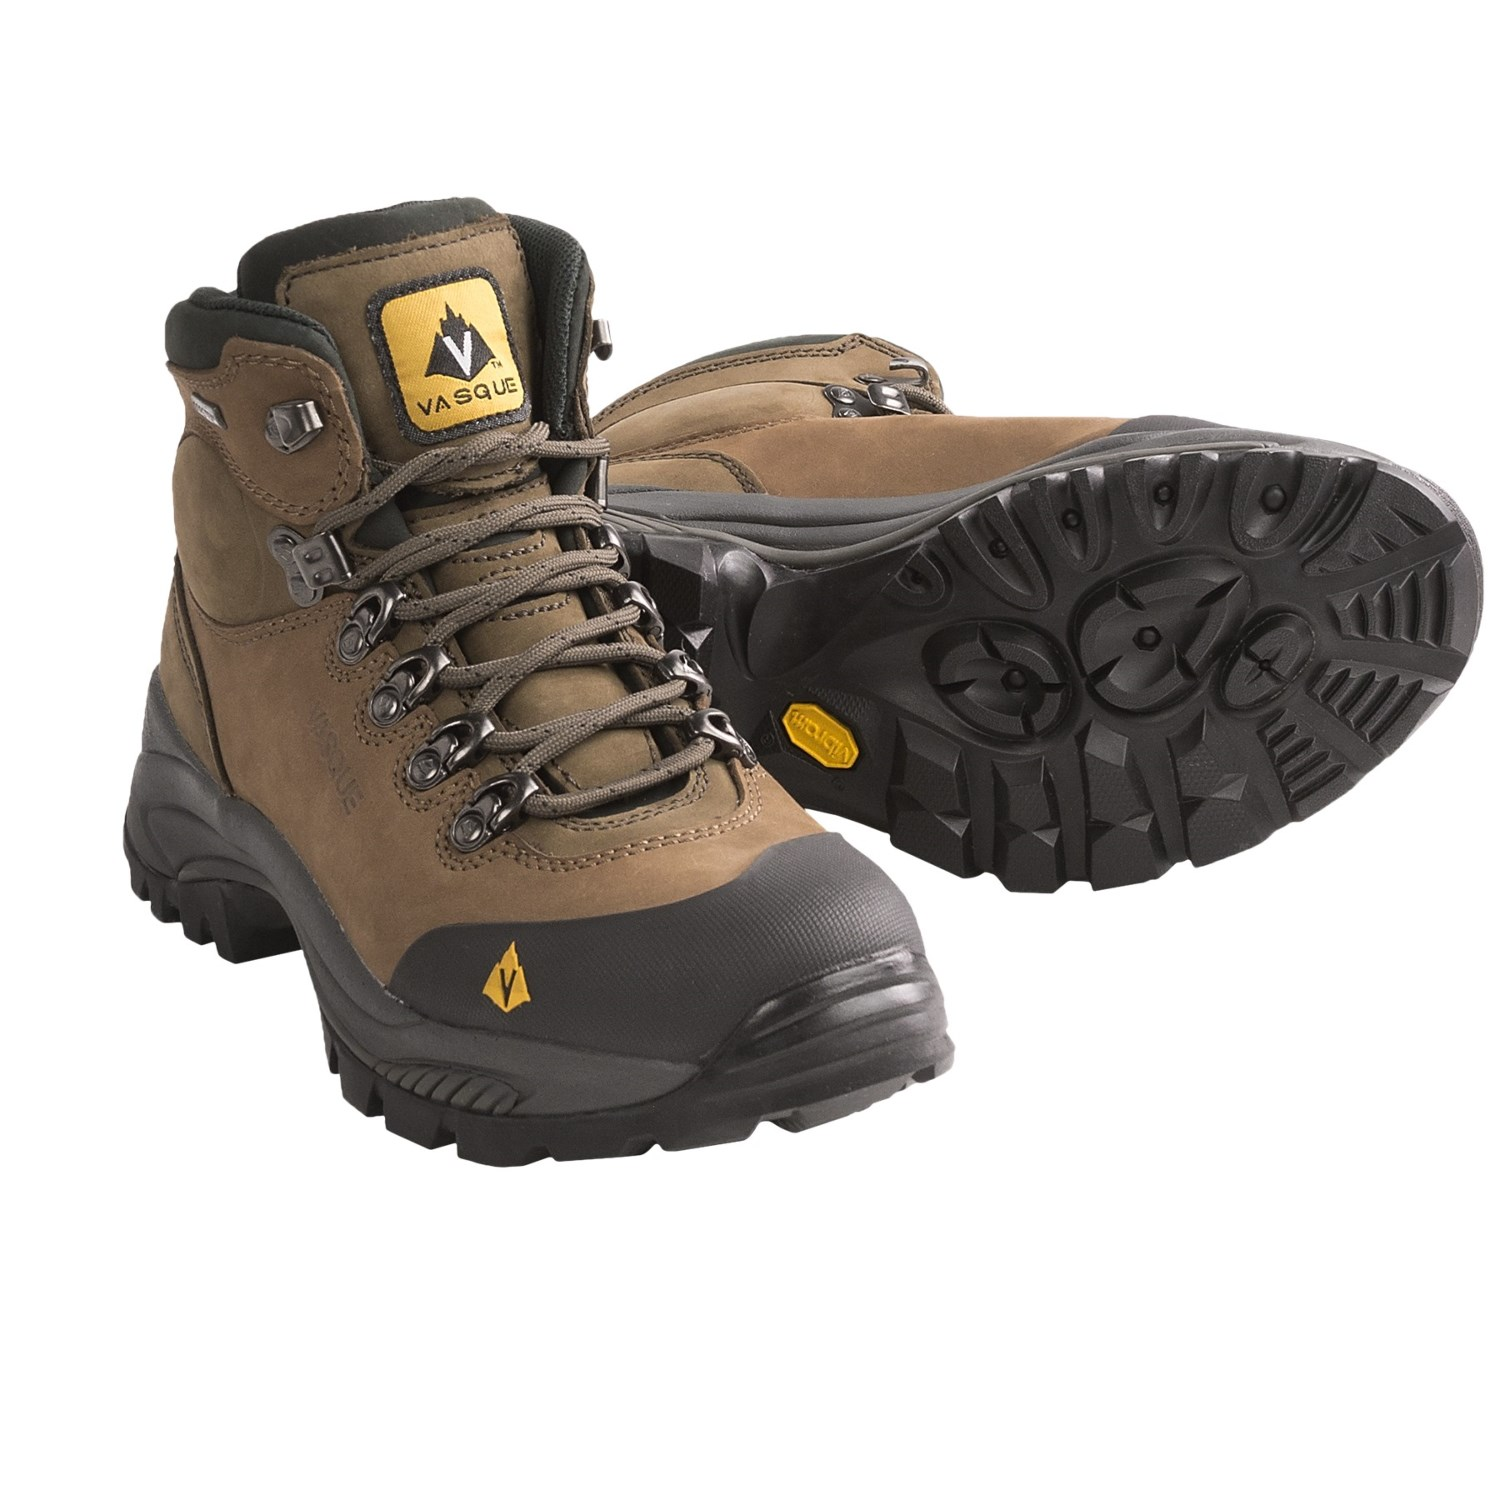 Lastest Vasque Bitterroot GoreTex Backpacking Boots For Women 8108D